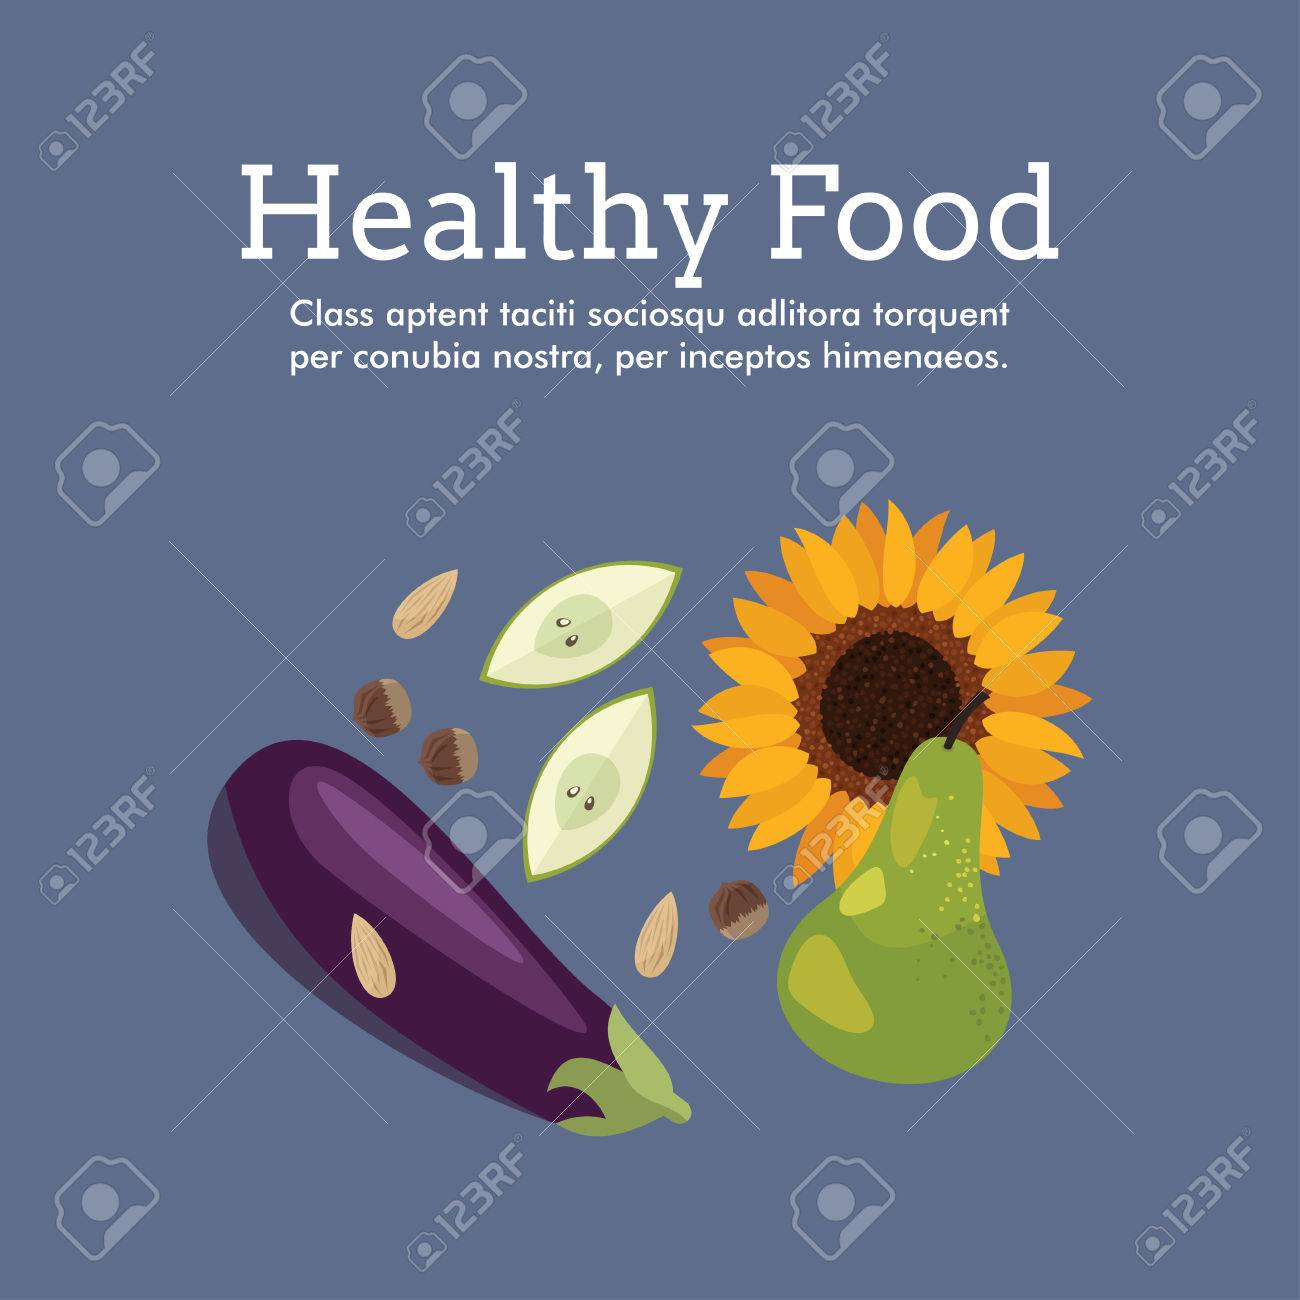 Poster design health - World Health Day Celebrating Card Or Poster Design Healthy Food Stock Vector 38481070